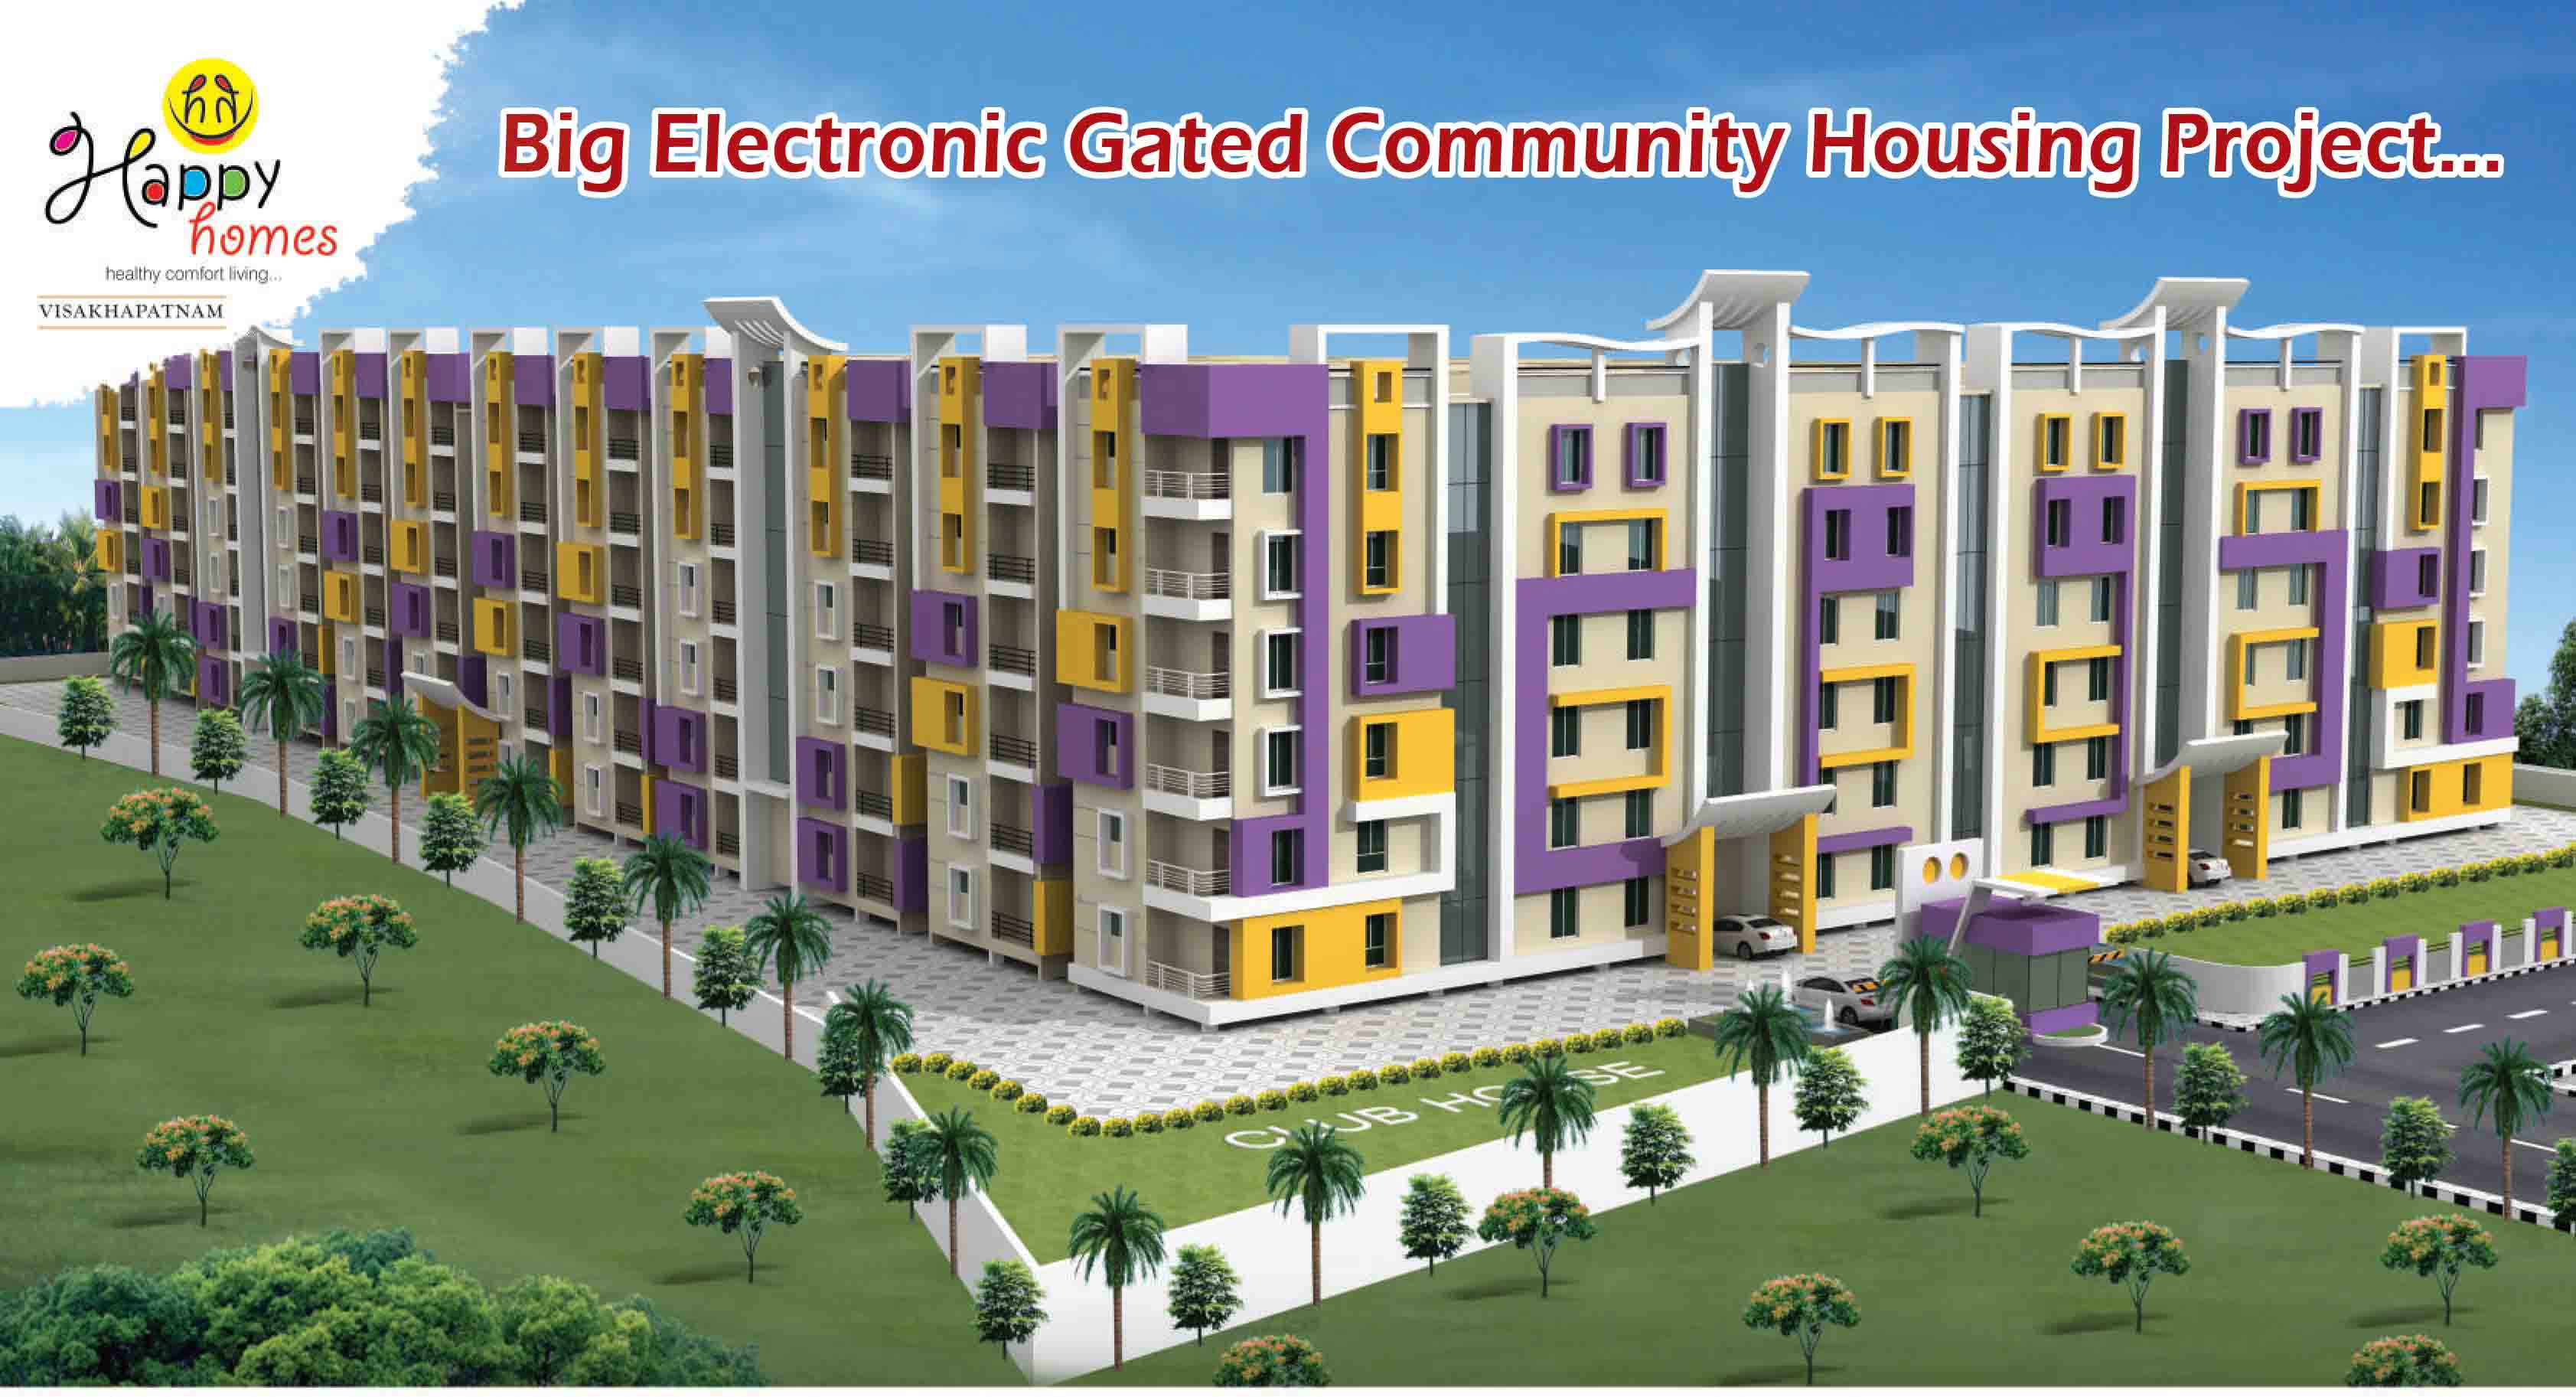 properties  for Sale in marripalem, vizag-real estate in vizag-happy homes